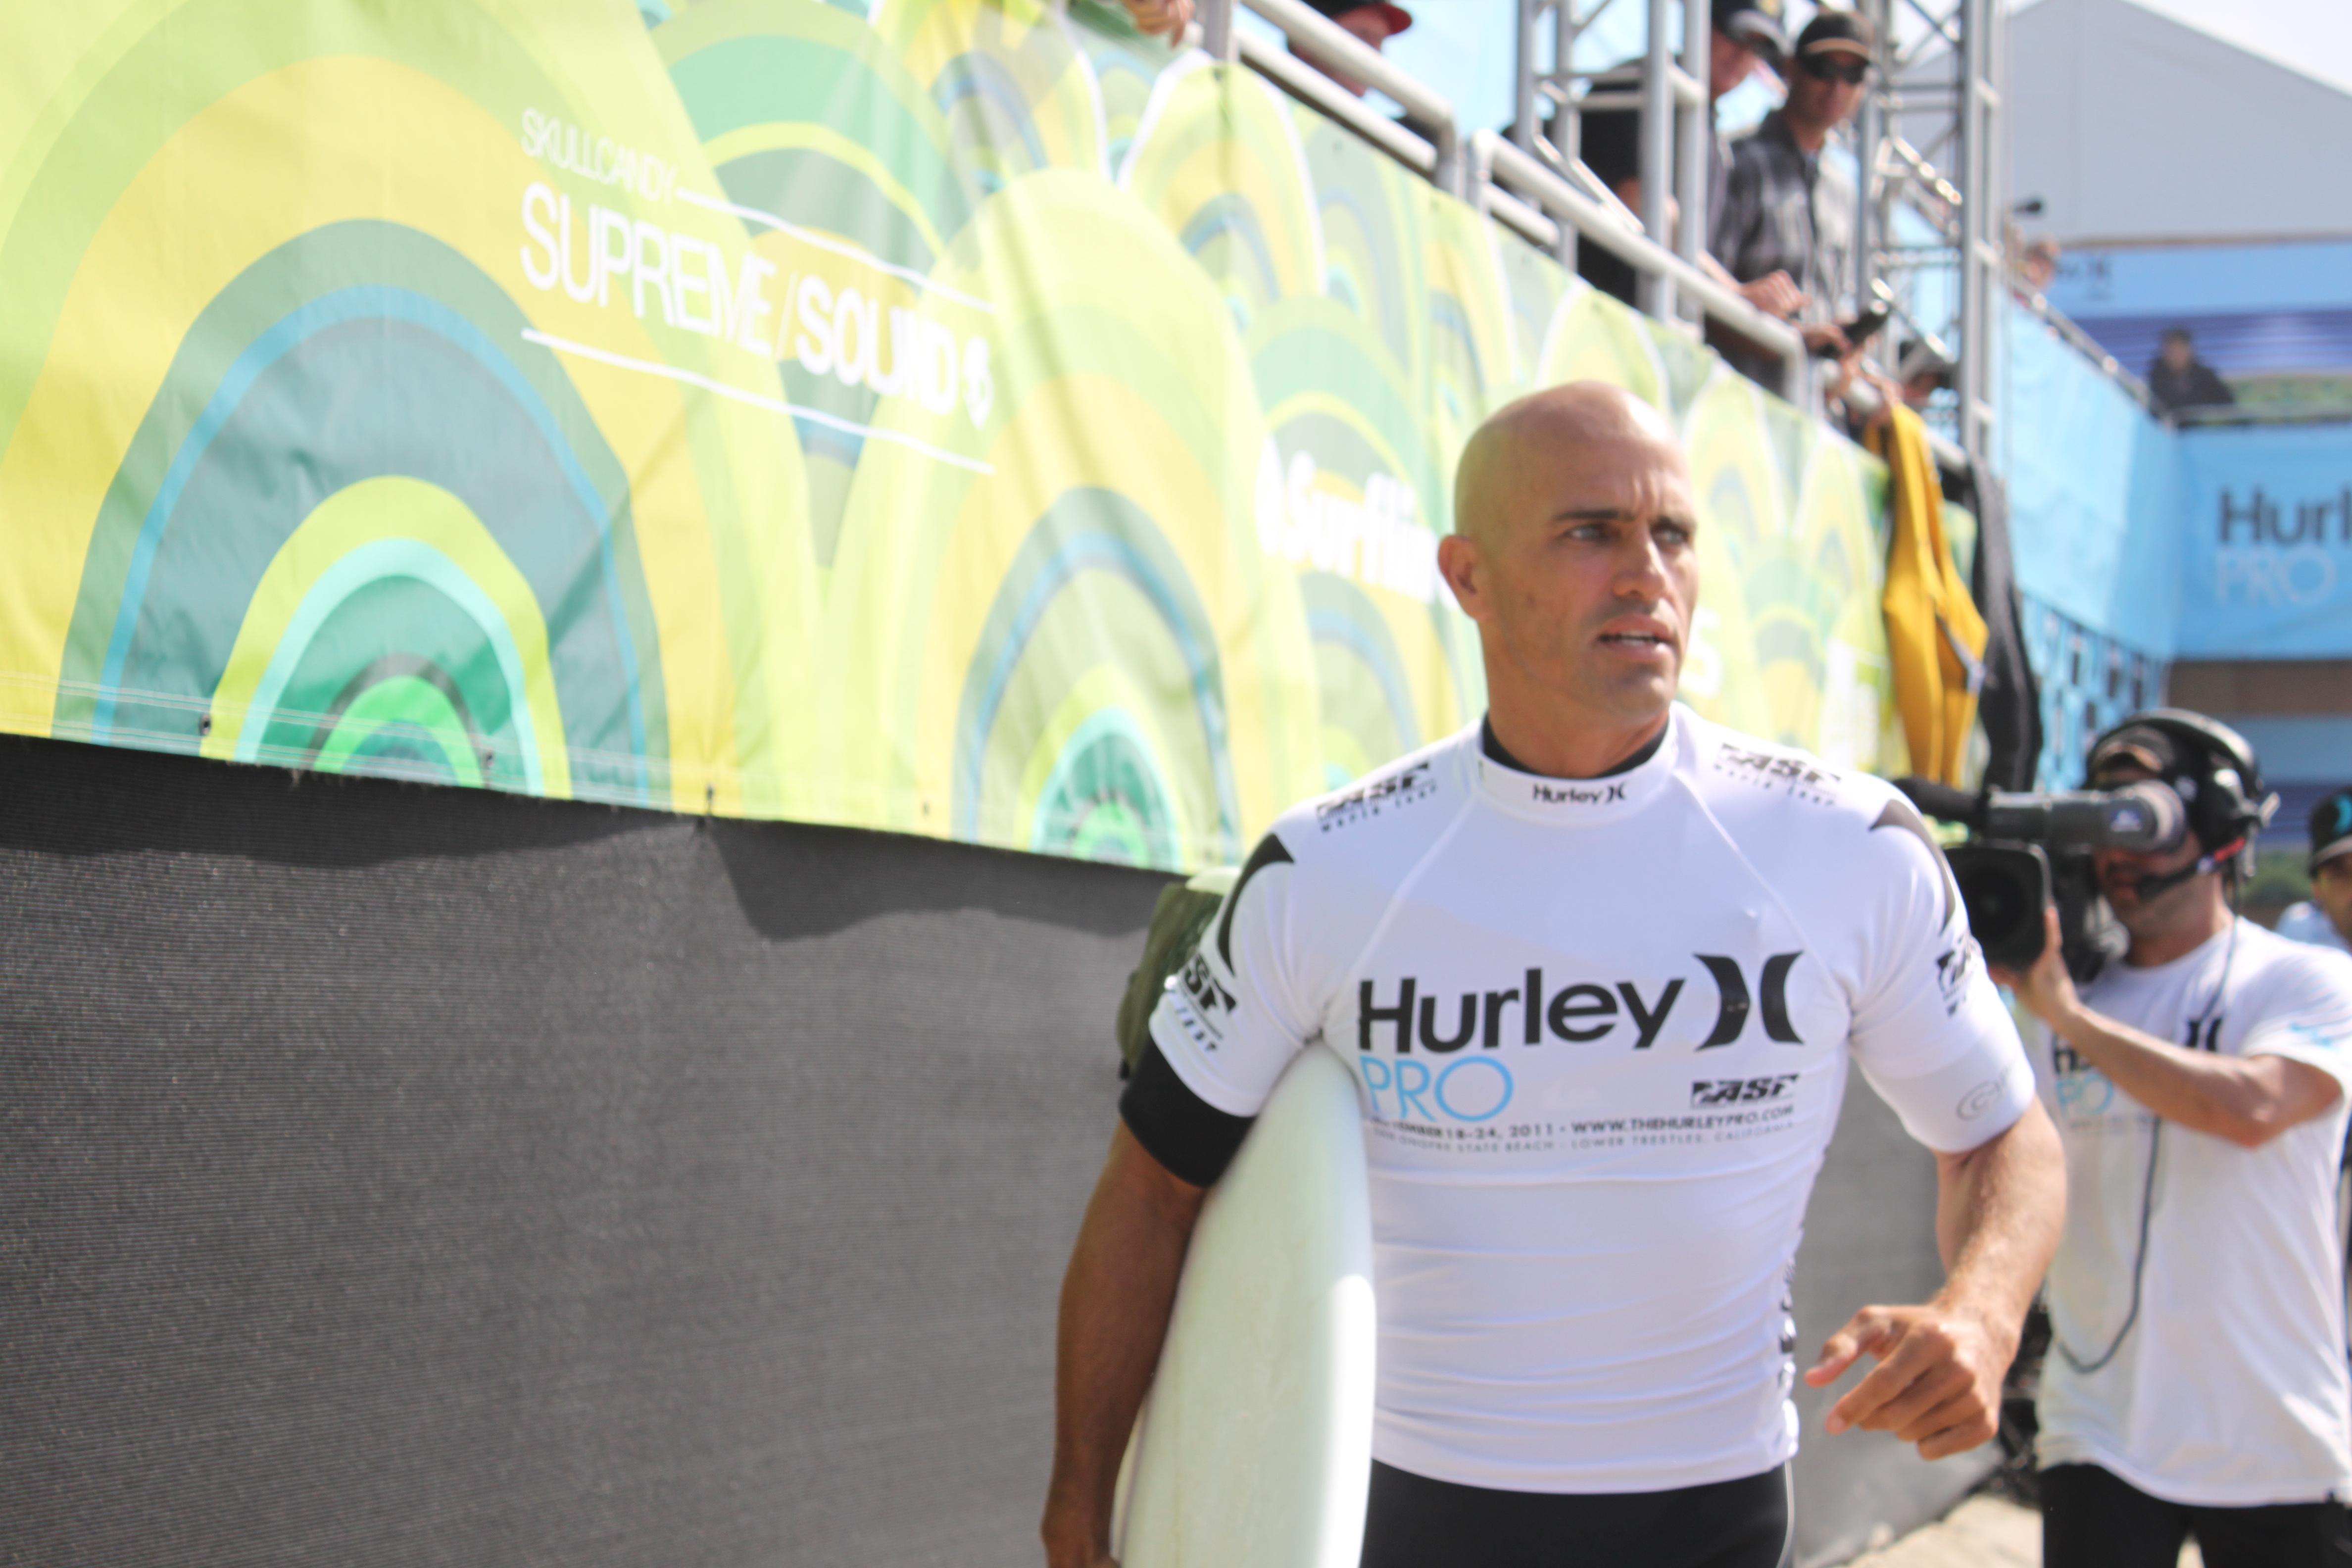 11-Time World Champion, Kelly Slater. Photo: Jackie Connor